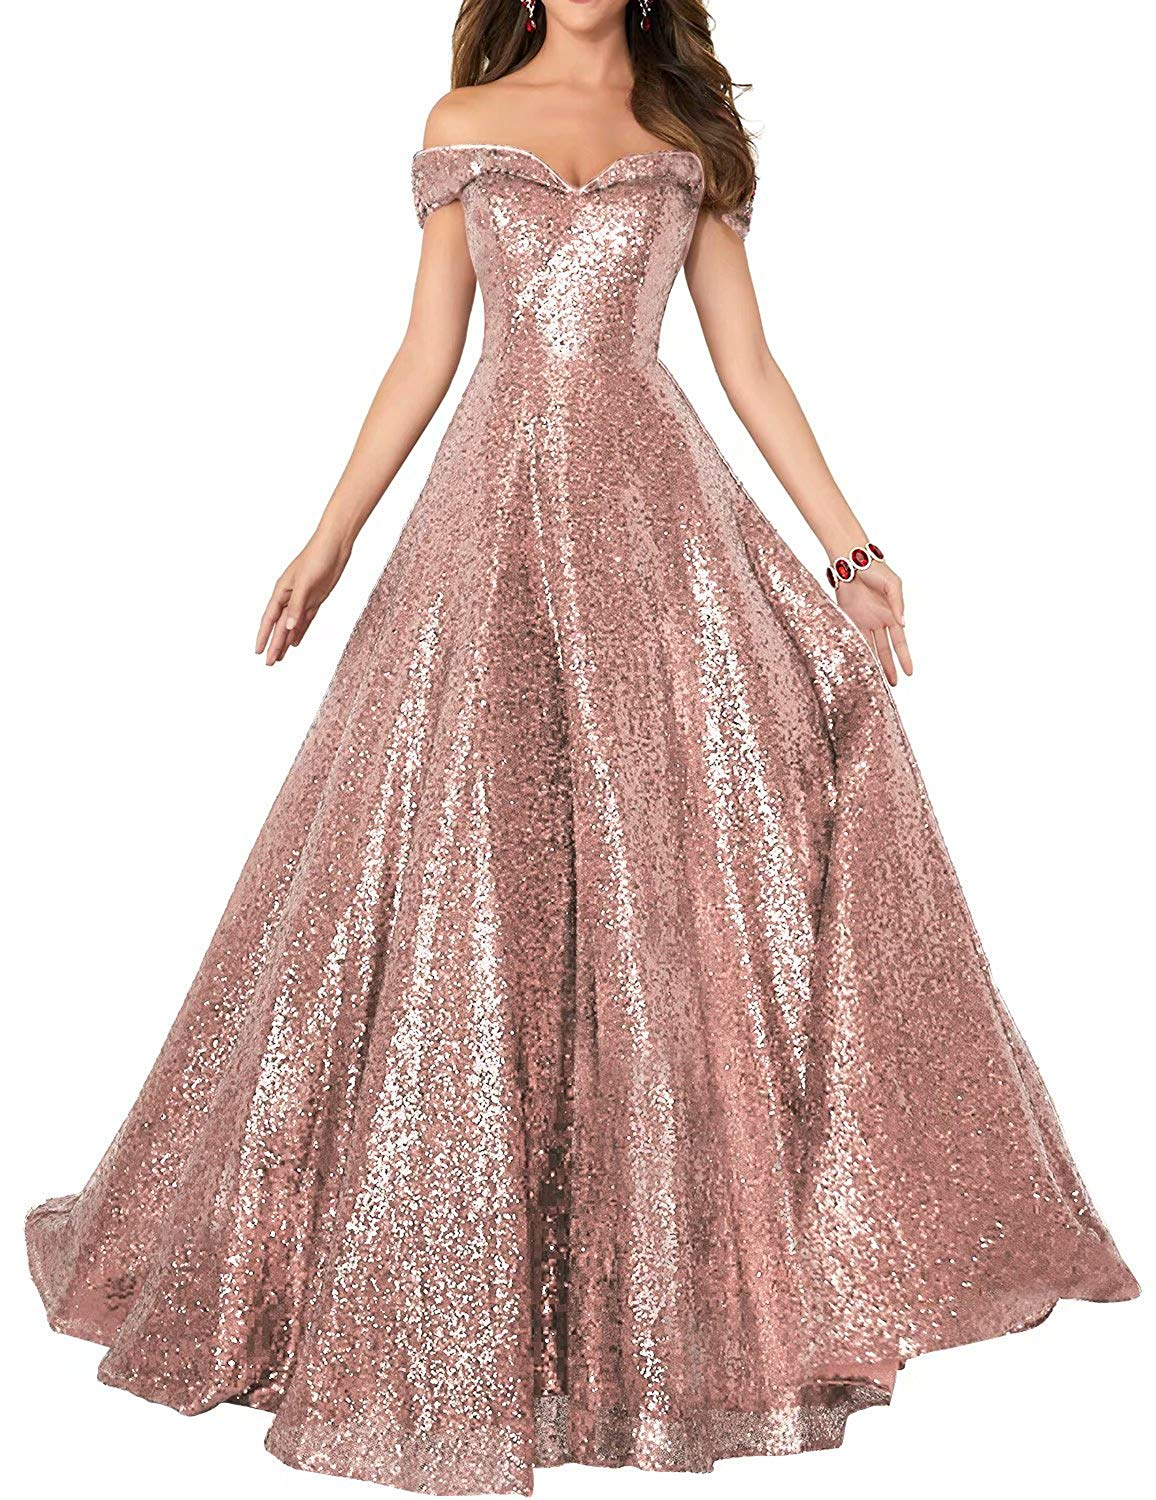 0c3cc869 ... Ball Gown Off the Shoulder Sweetheart Long Sequins Prom Dress Evening  Gown